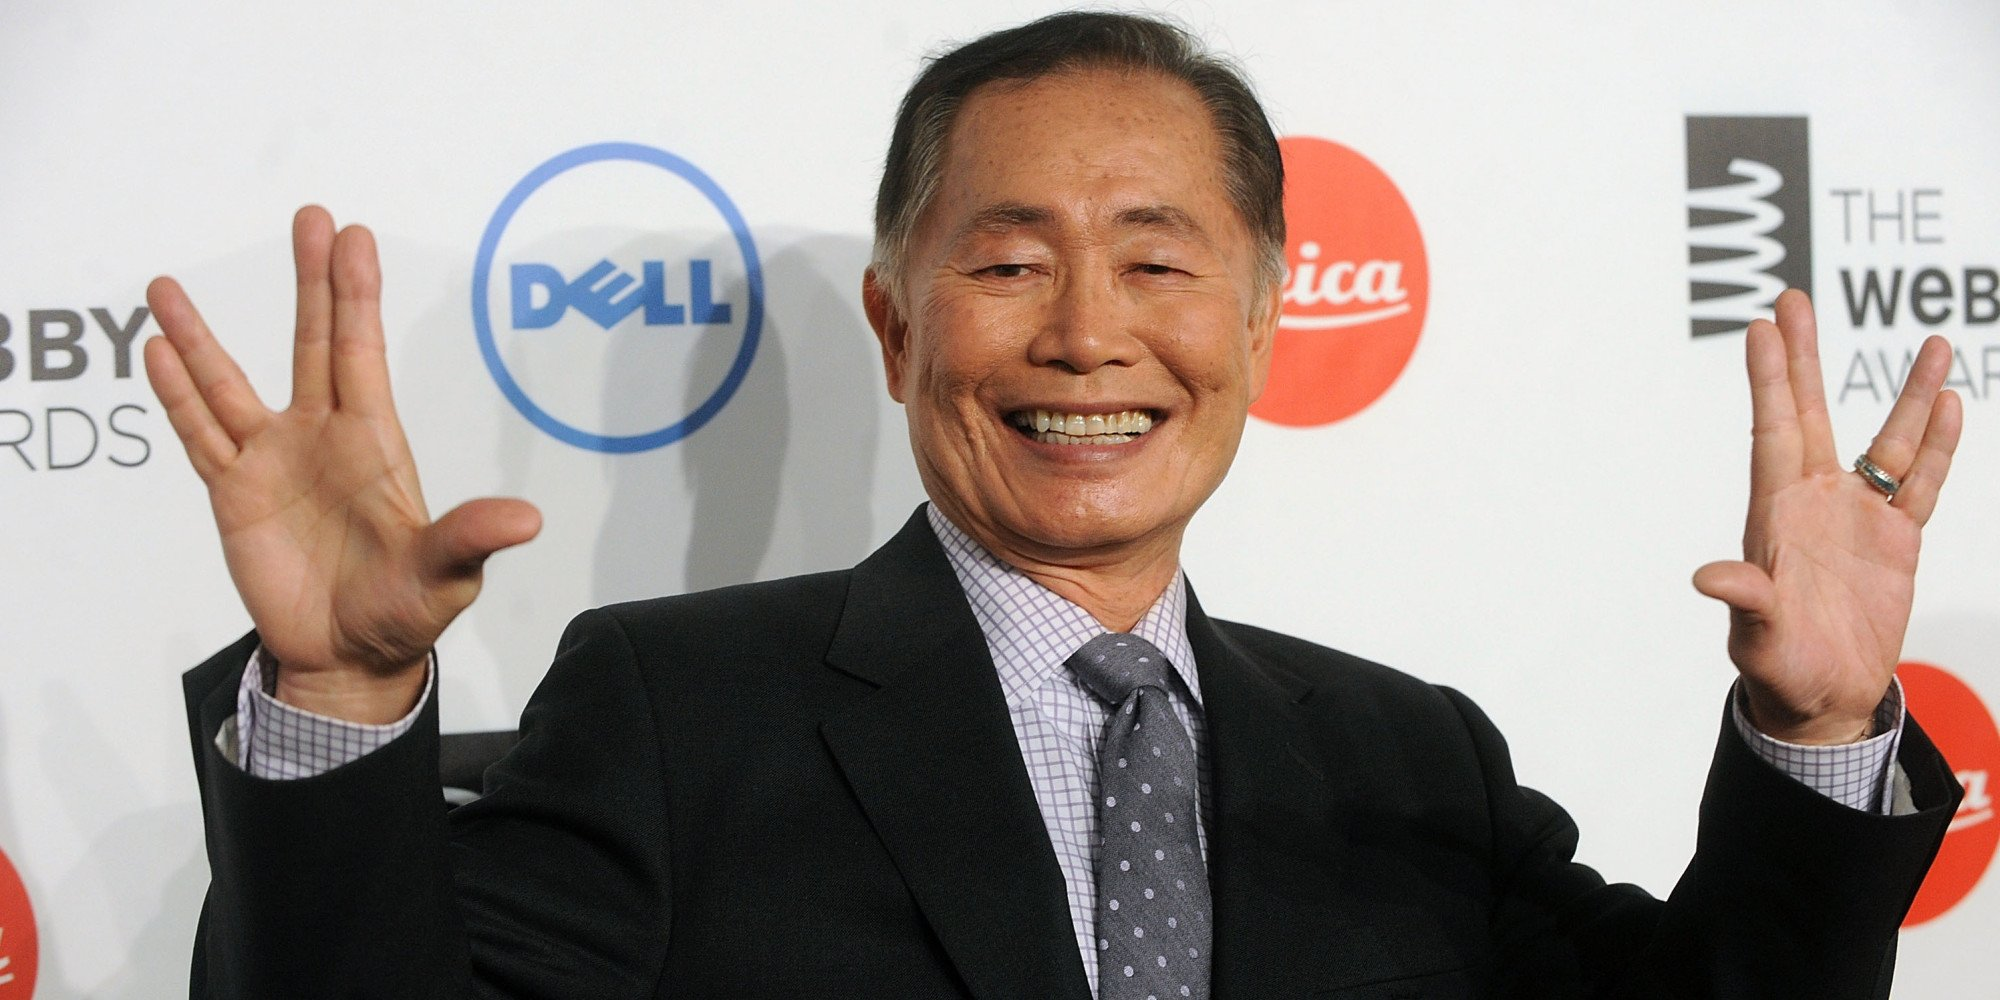 Takei 2 25 Things About George Takei That You Probably Didn't Know!